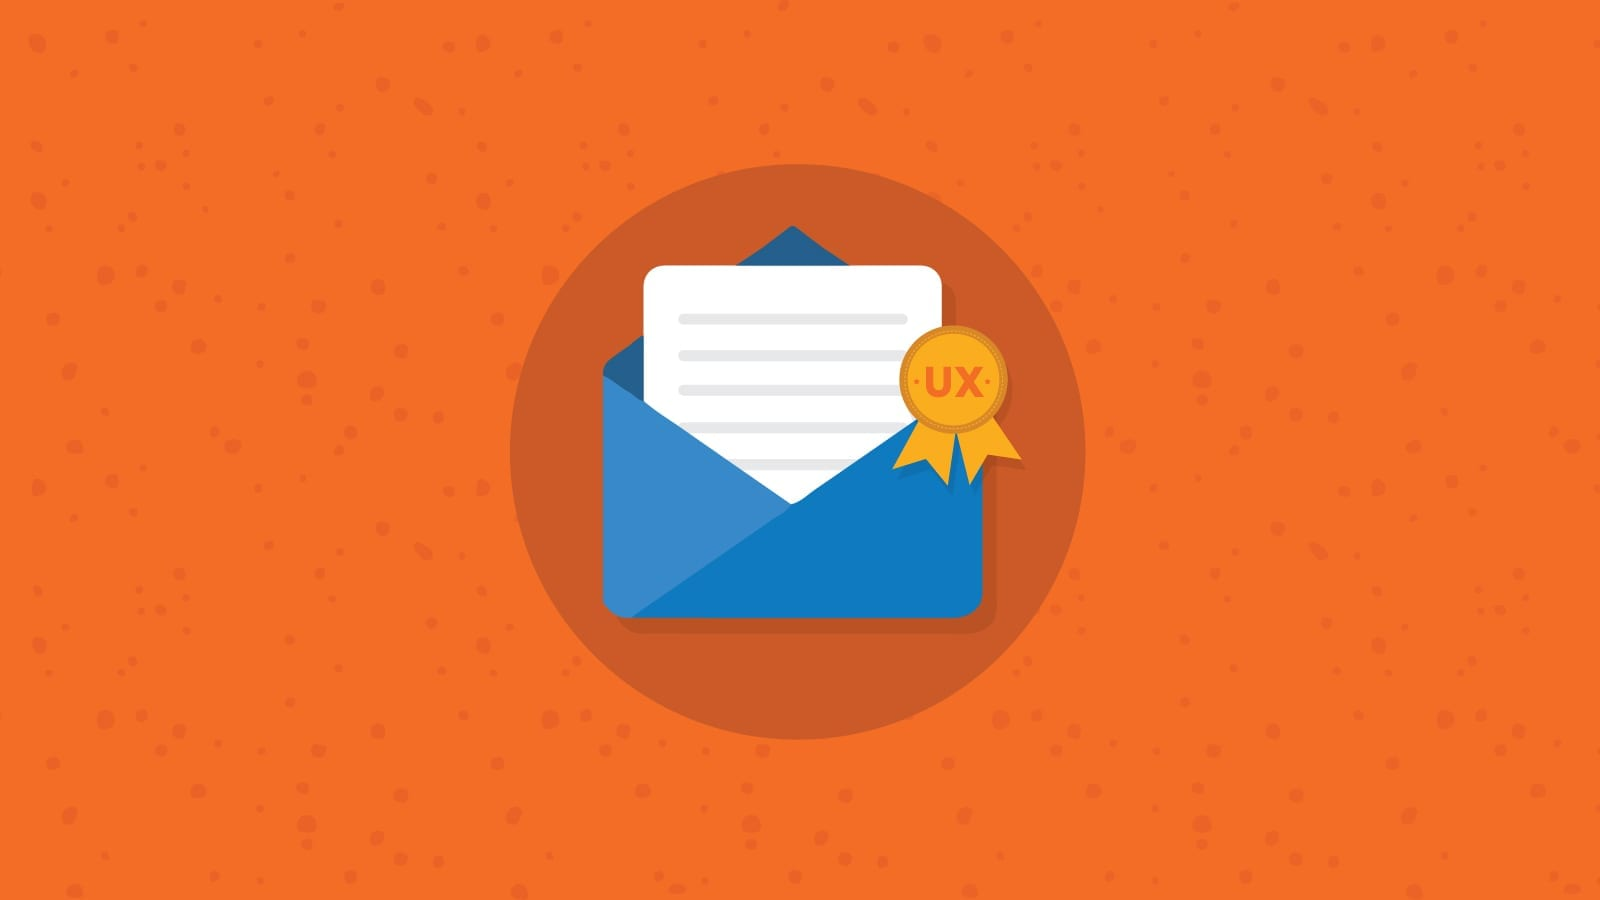 Improve your email UX with these design tips.